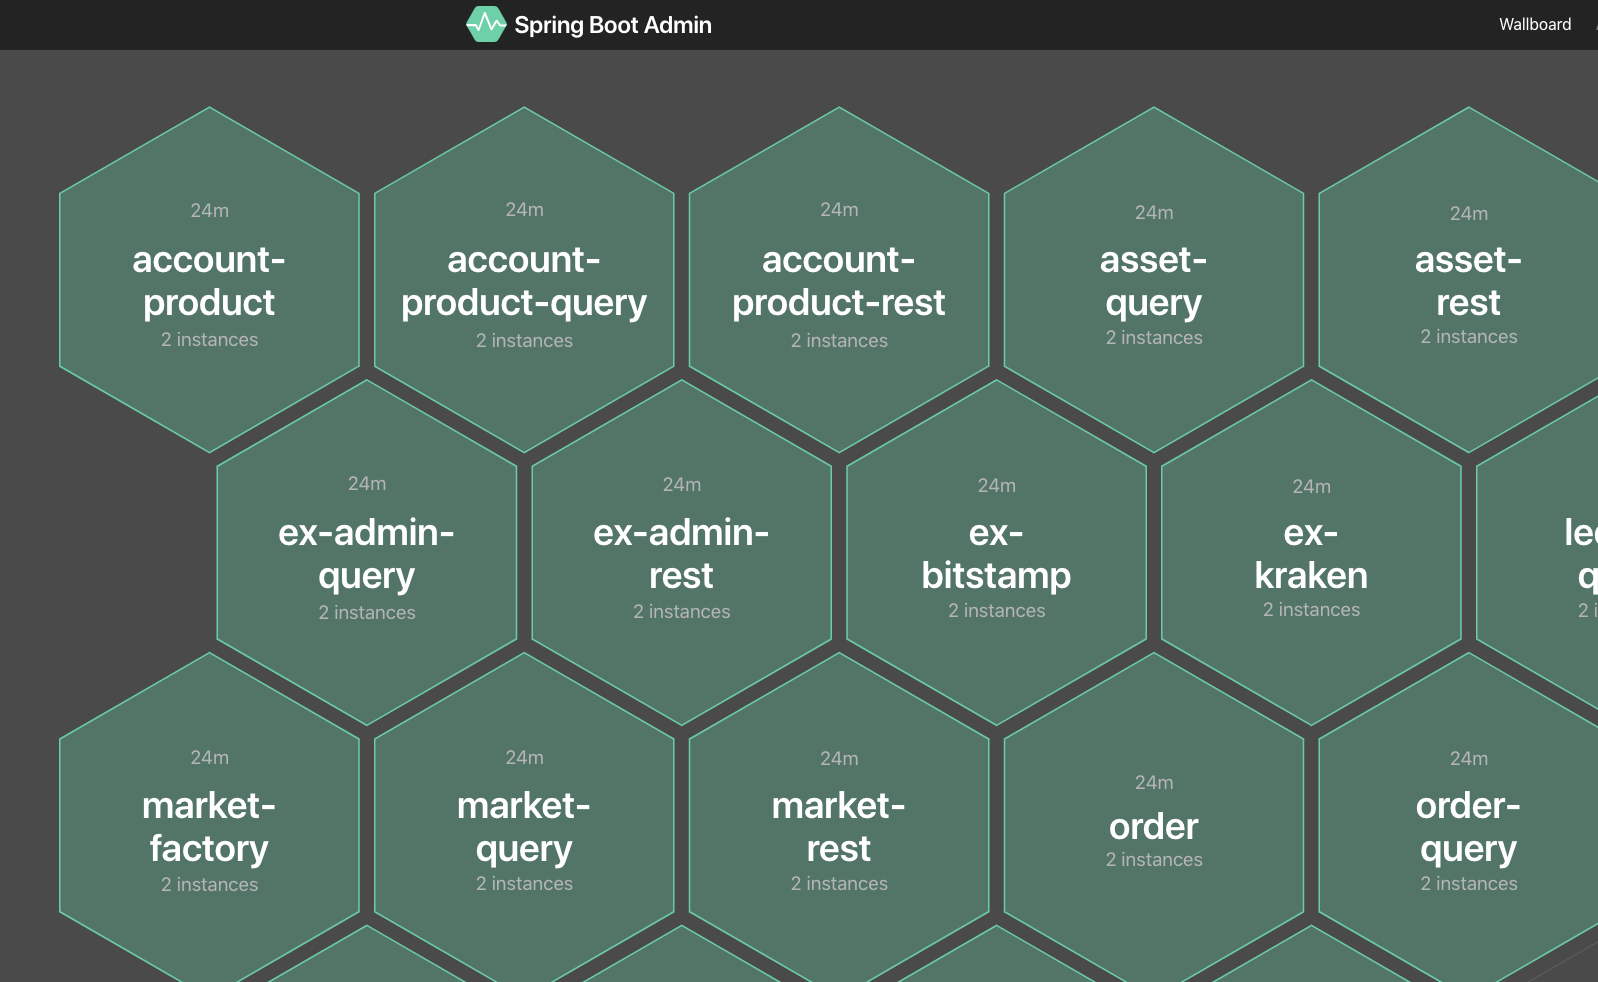 Managing Spring Boot Microservices with Spring Boot Admin on